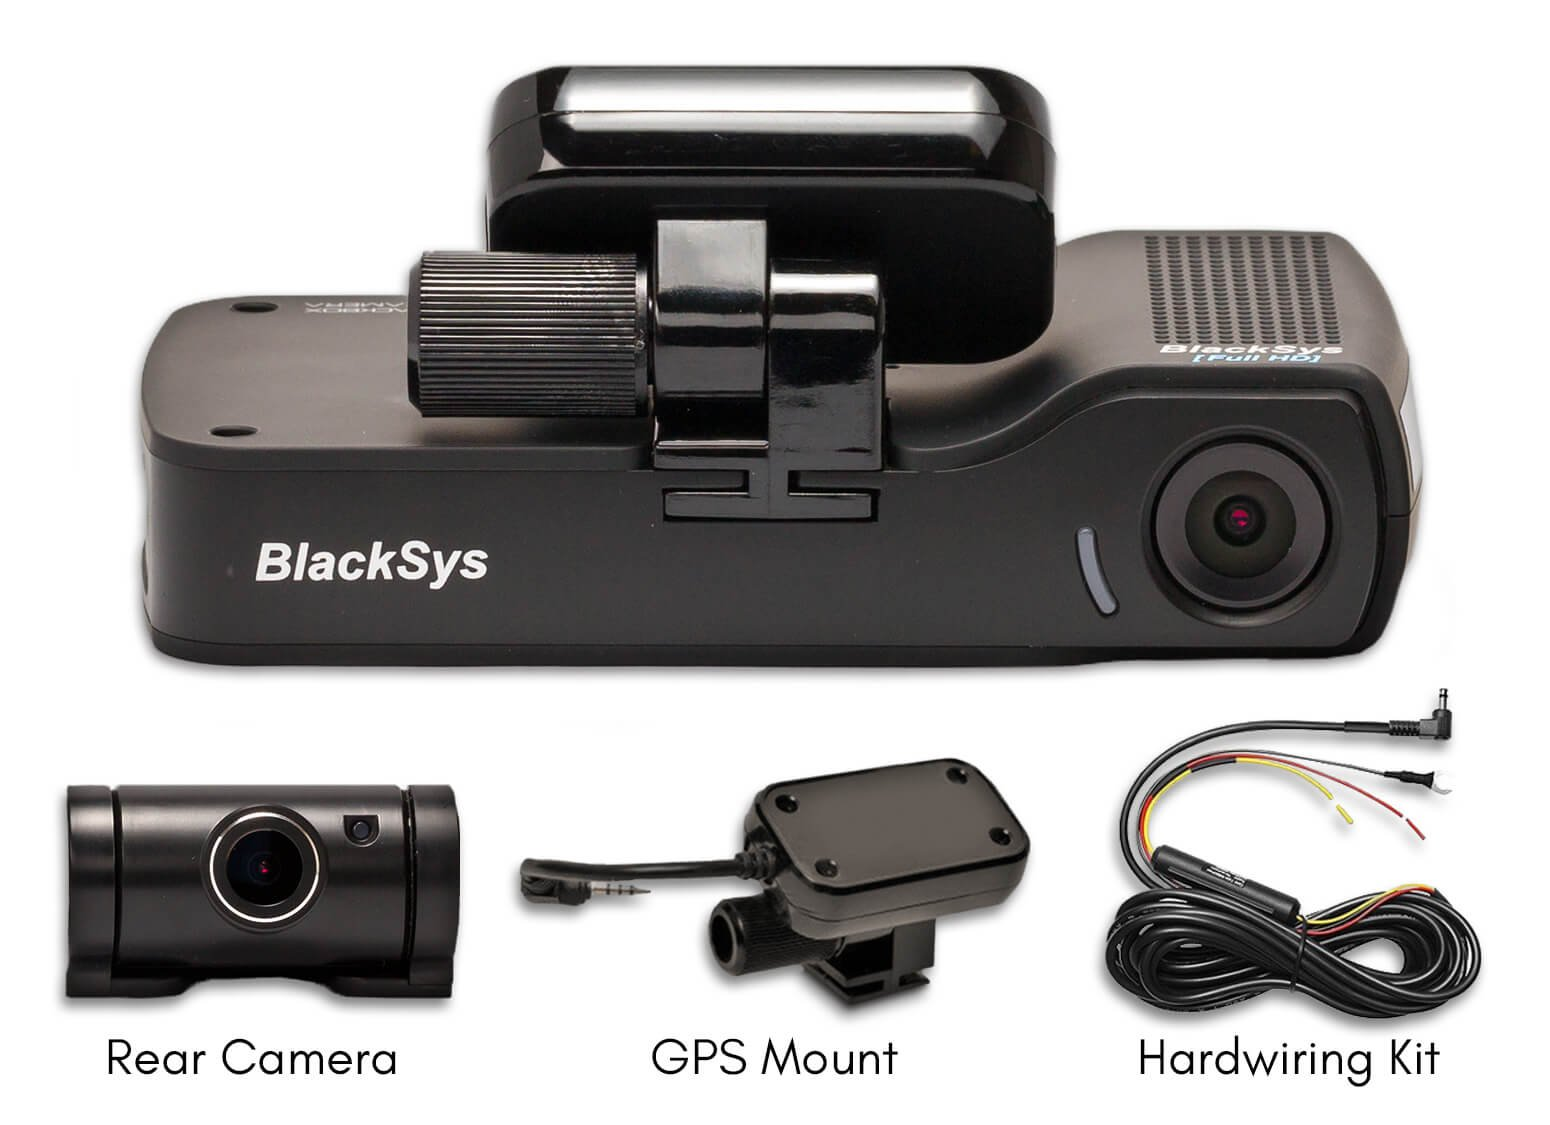 BlackSys CH-100B 2 Channel 1080P FULL HD Front and Rear Pro Wide Angle Dashboard Recorder | Dash Cam With G-Sensor + Up to 128gb Memory | Car Parking Mode | Wifi App by Blacksys